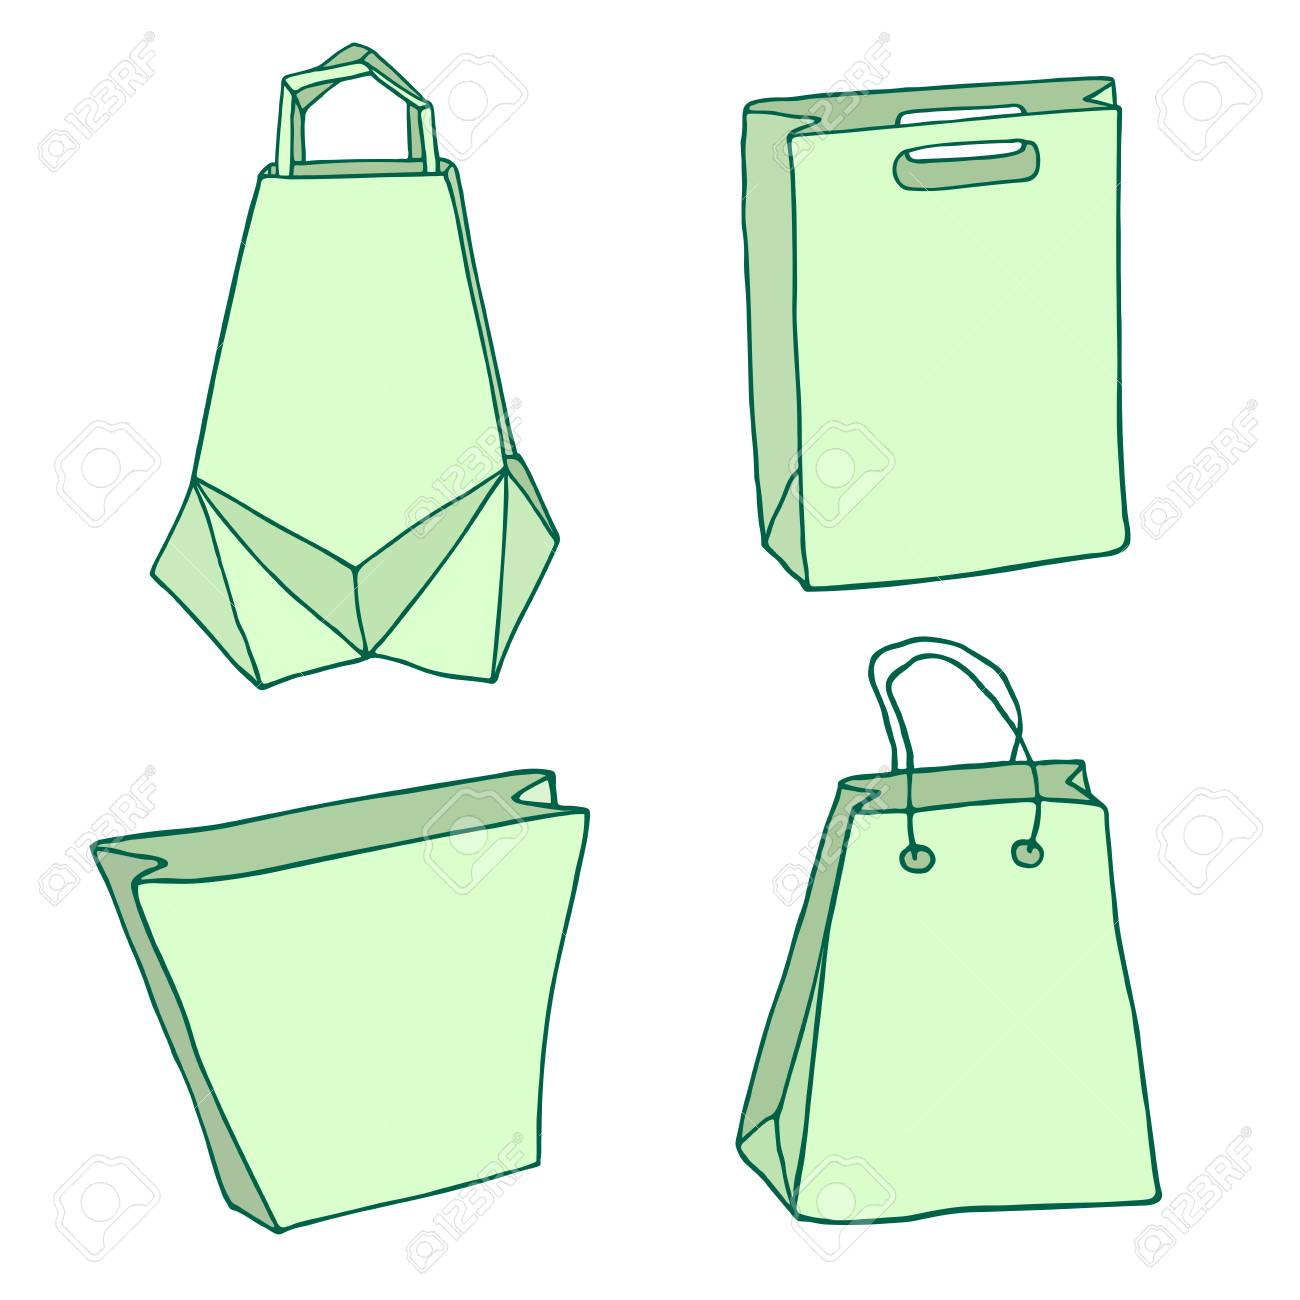 4a25c4b8368 Various Shopping bags. Handbags, carriers, innovative origami bag, paper  bags. Vector